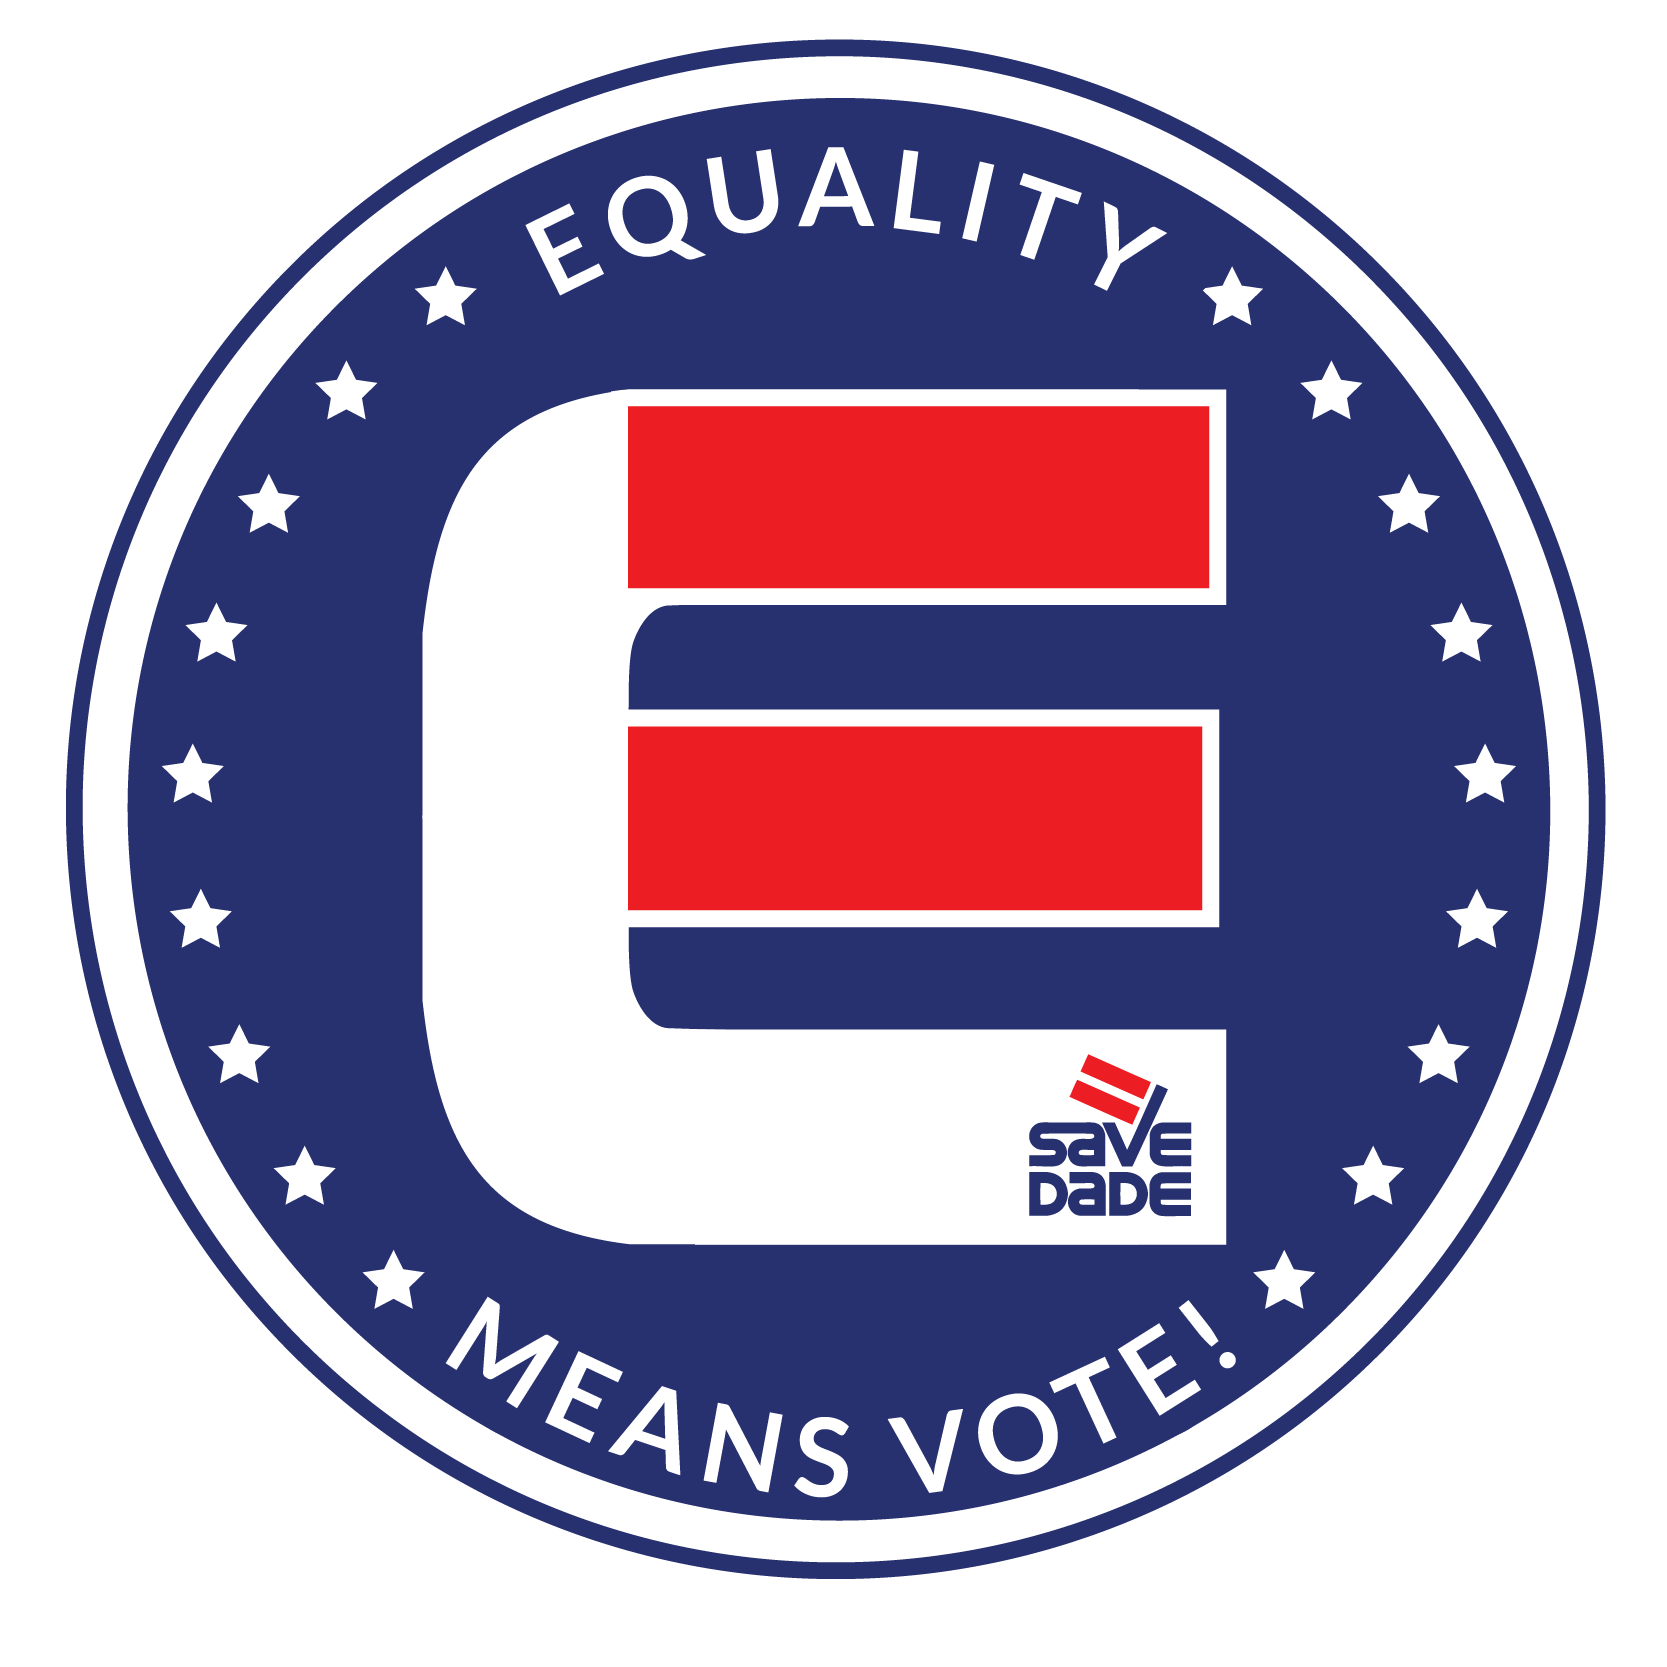 EQUALITY means VOTE!